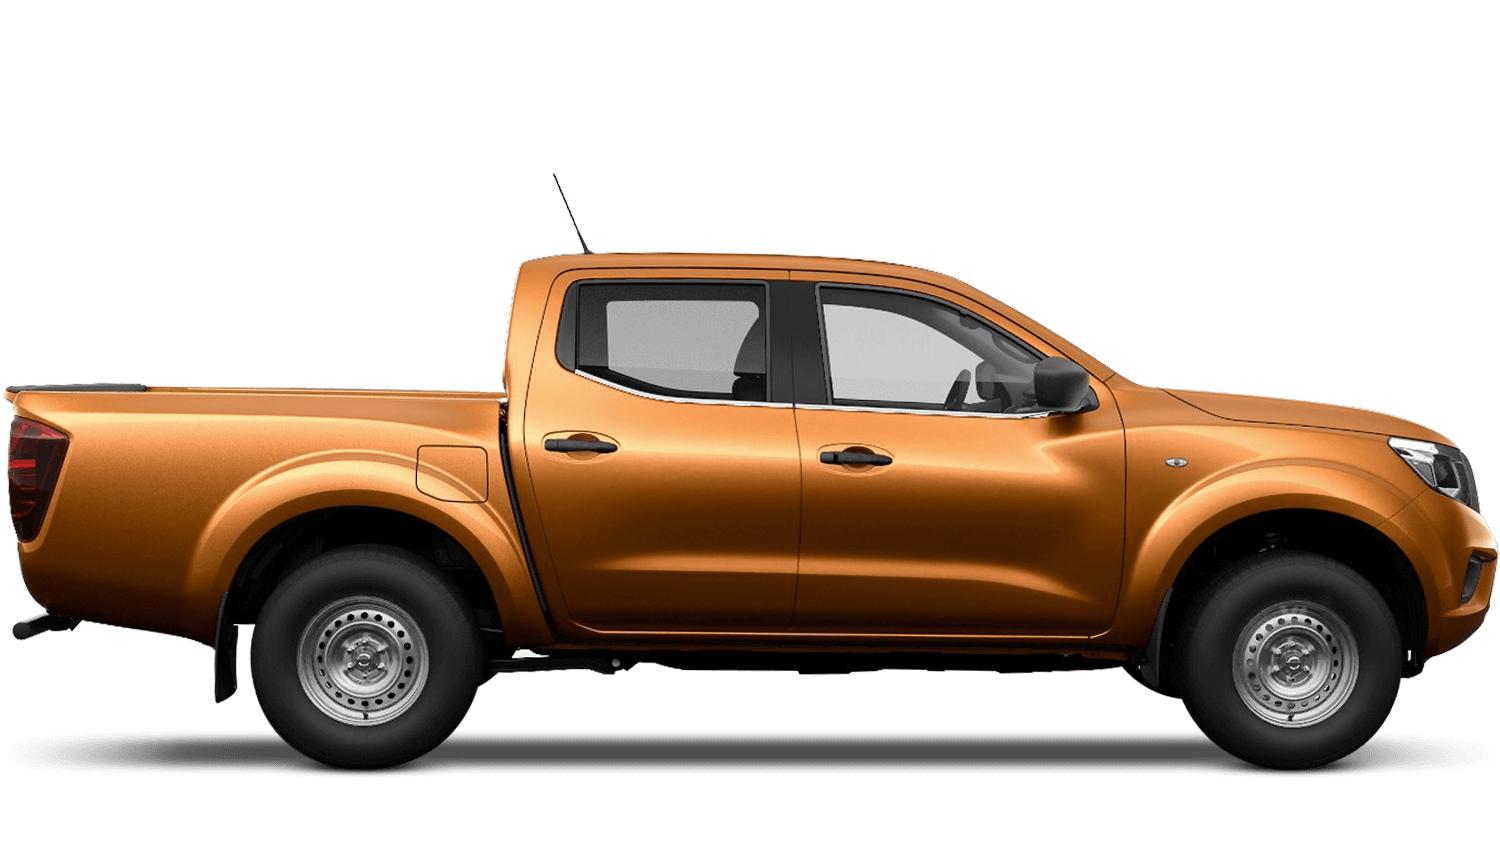 Savannah Yellow Nissan Navara